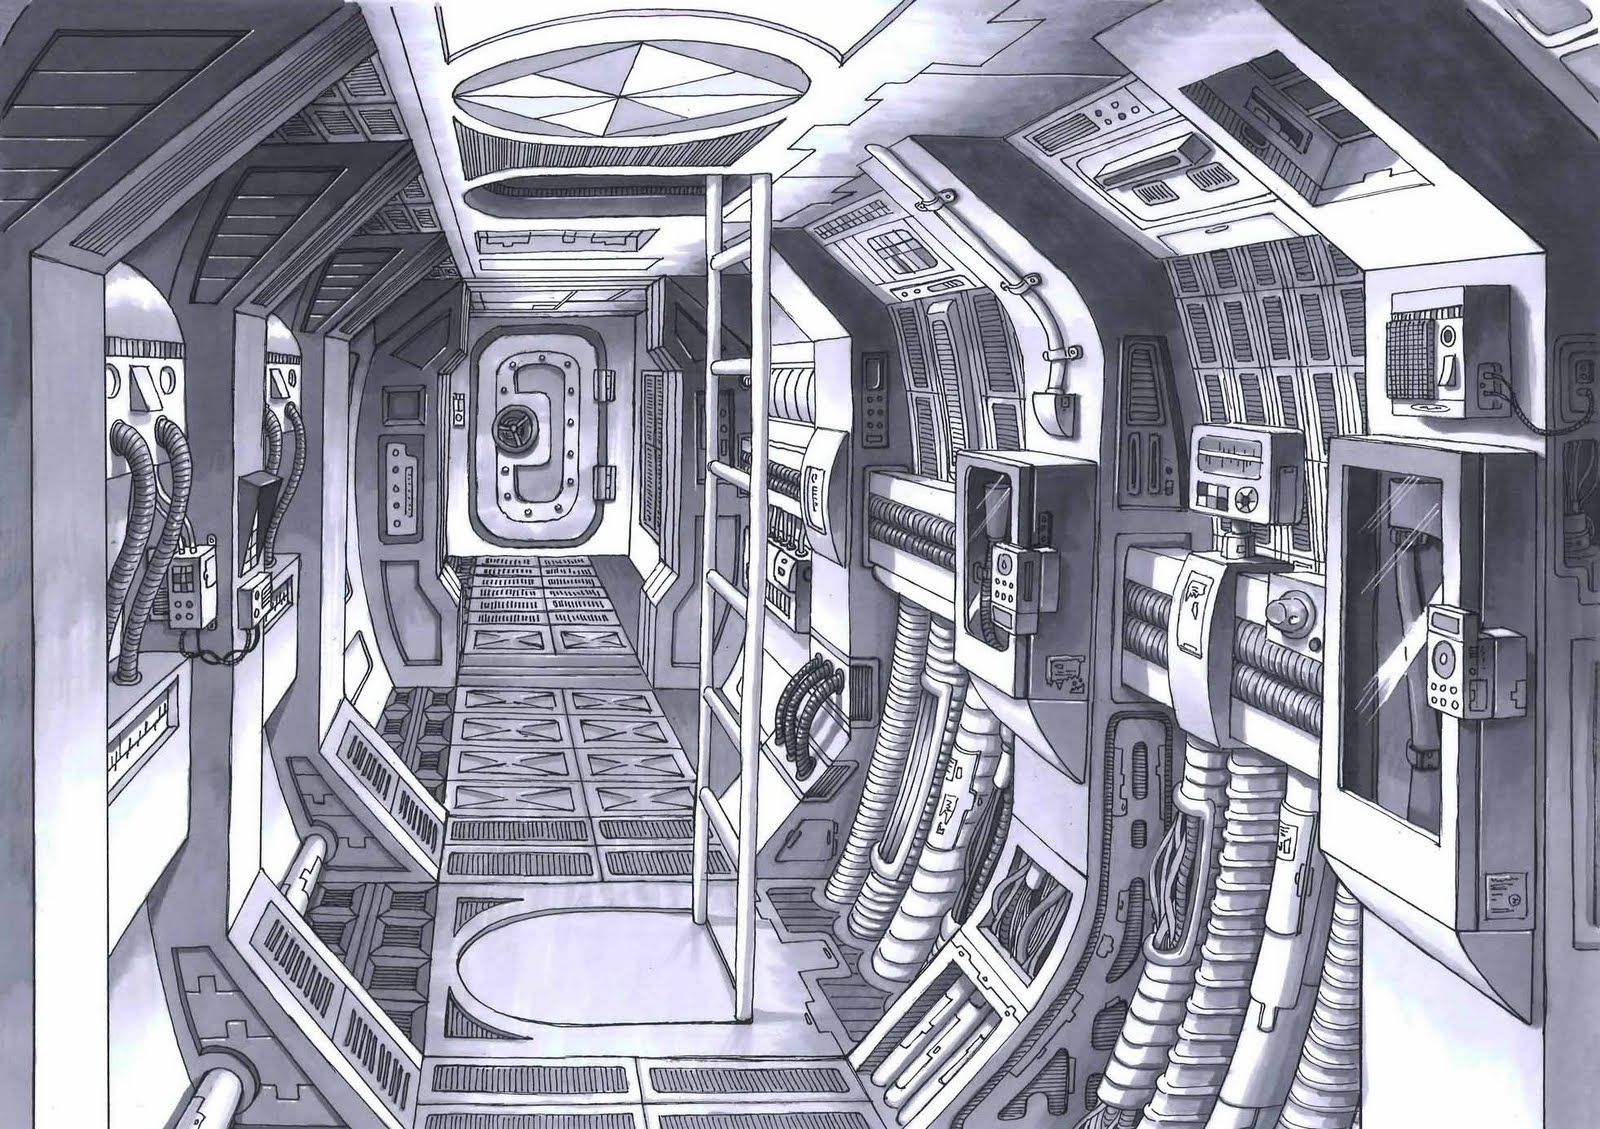 Modern Ship Design : Spaceship interior concept art space ship design